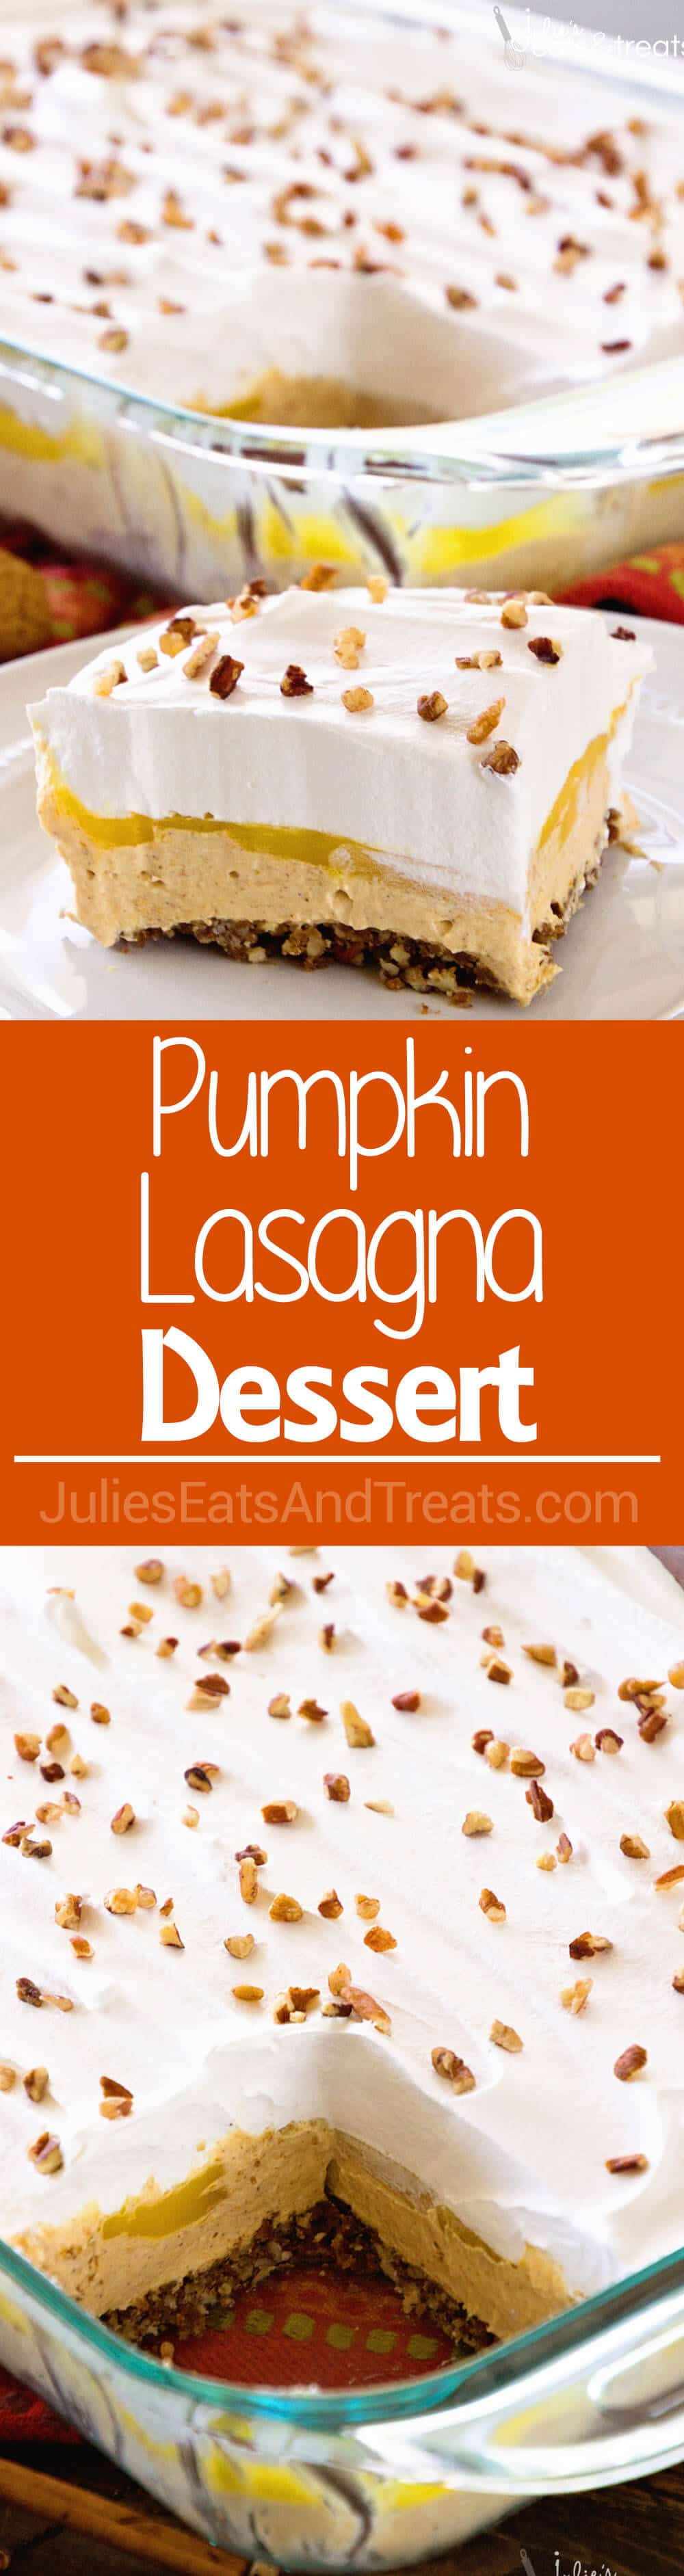 Pumpkin Lasagna Dessert ~ Creamy, Delicious Pumpkin Dessert with Layers of Gingersnap Cookies, Vanilla Pudding and Pumpkin! You Won't Be Able to Stop with One Bite!